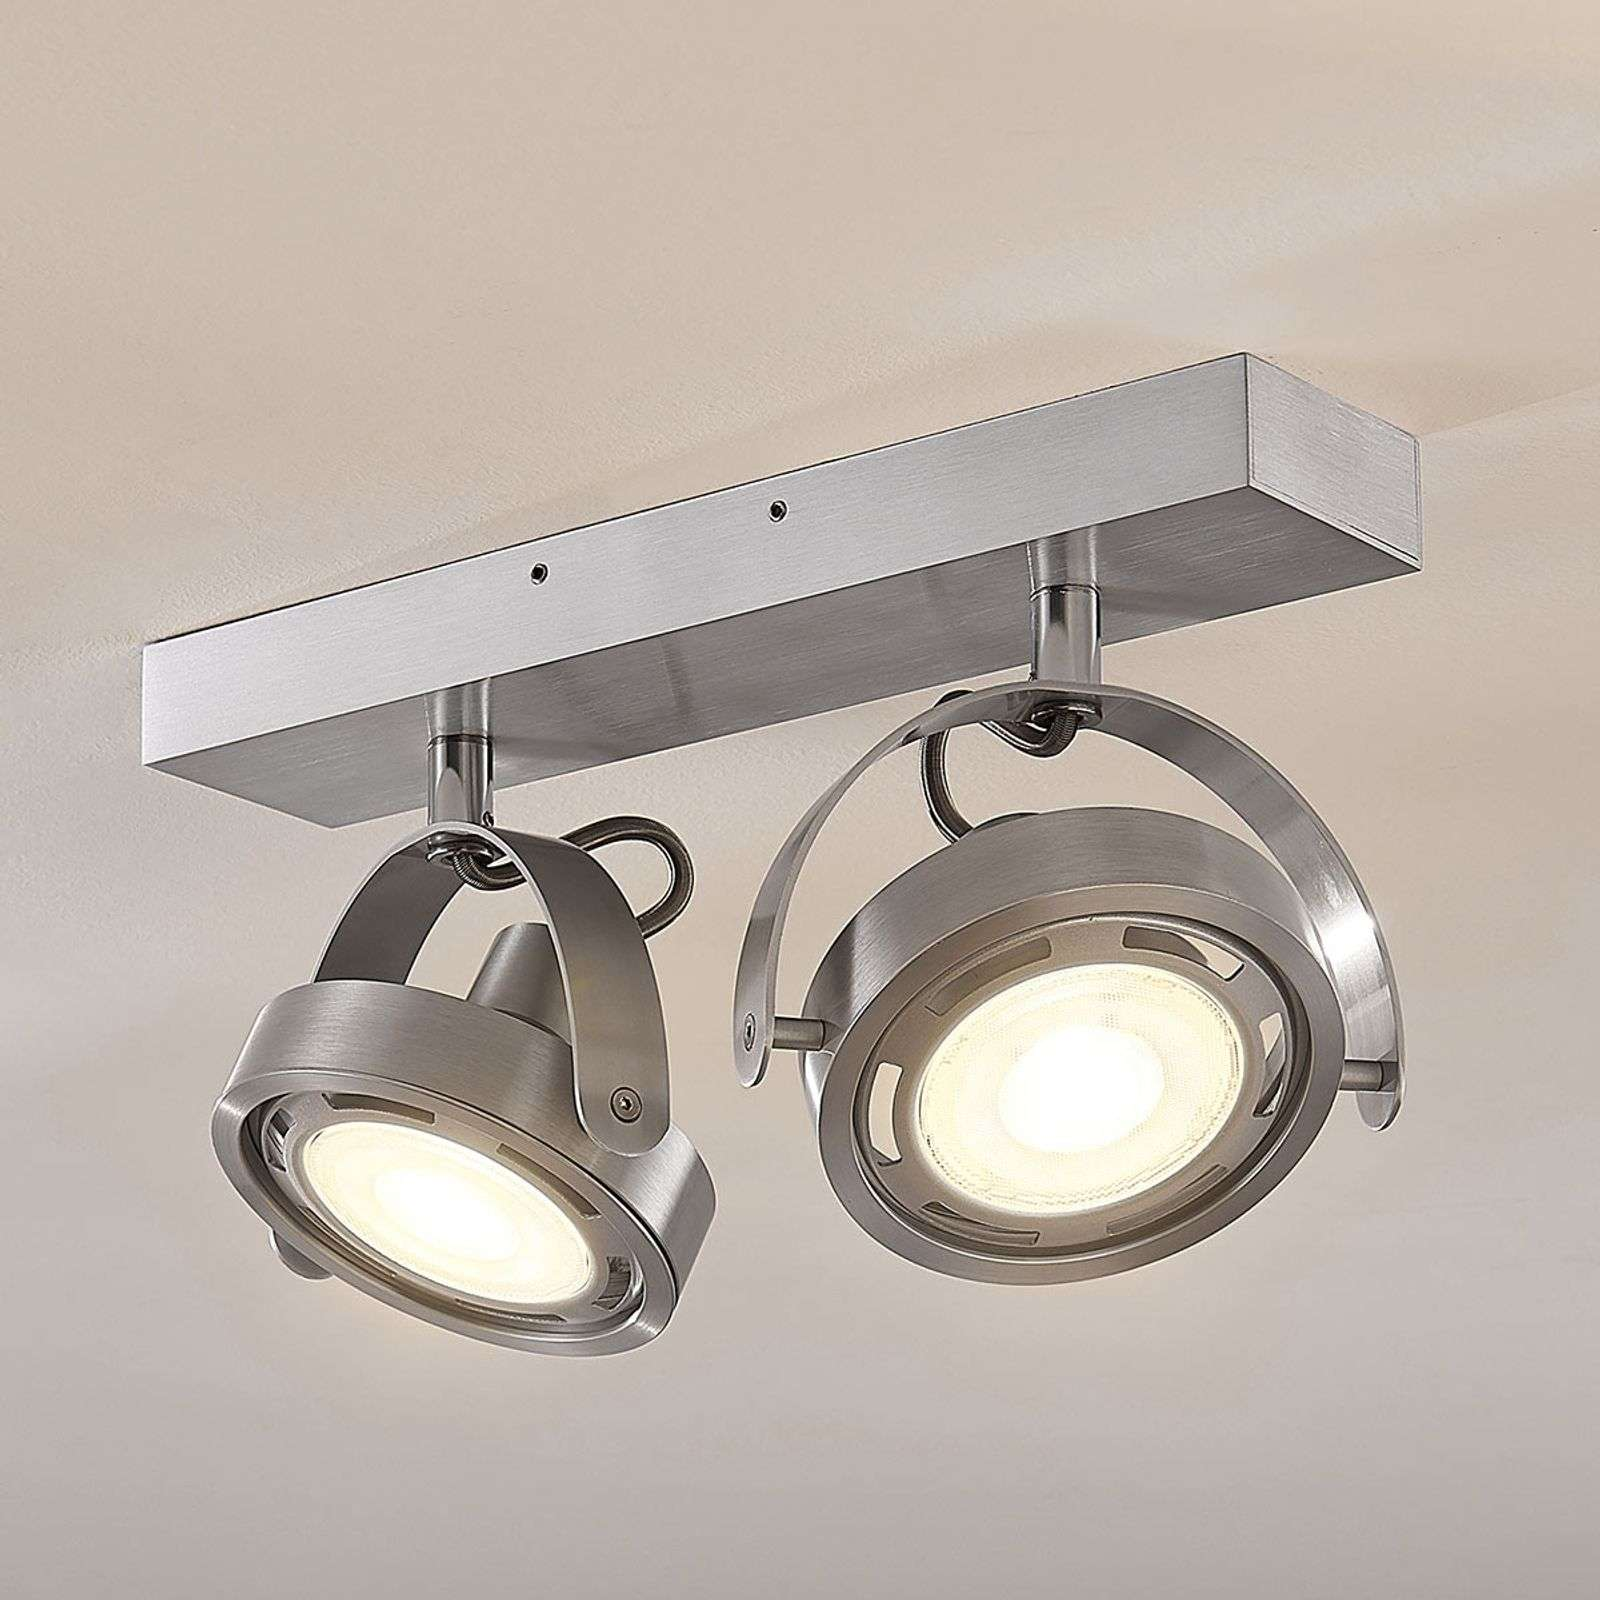 Faretto a LED Munin in alluminio, dimmer, a 2 luci